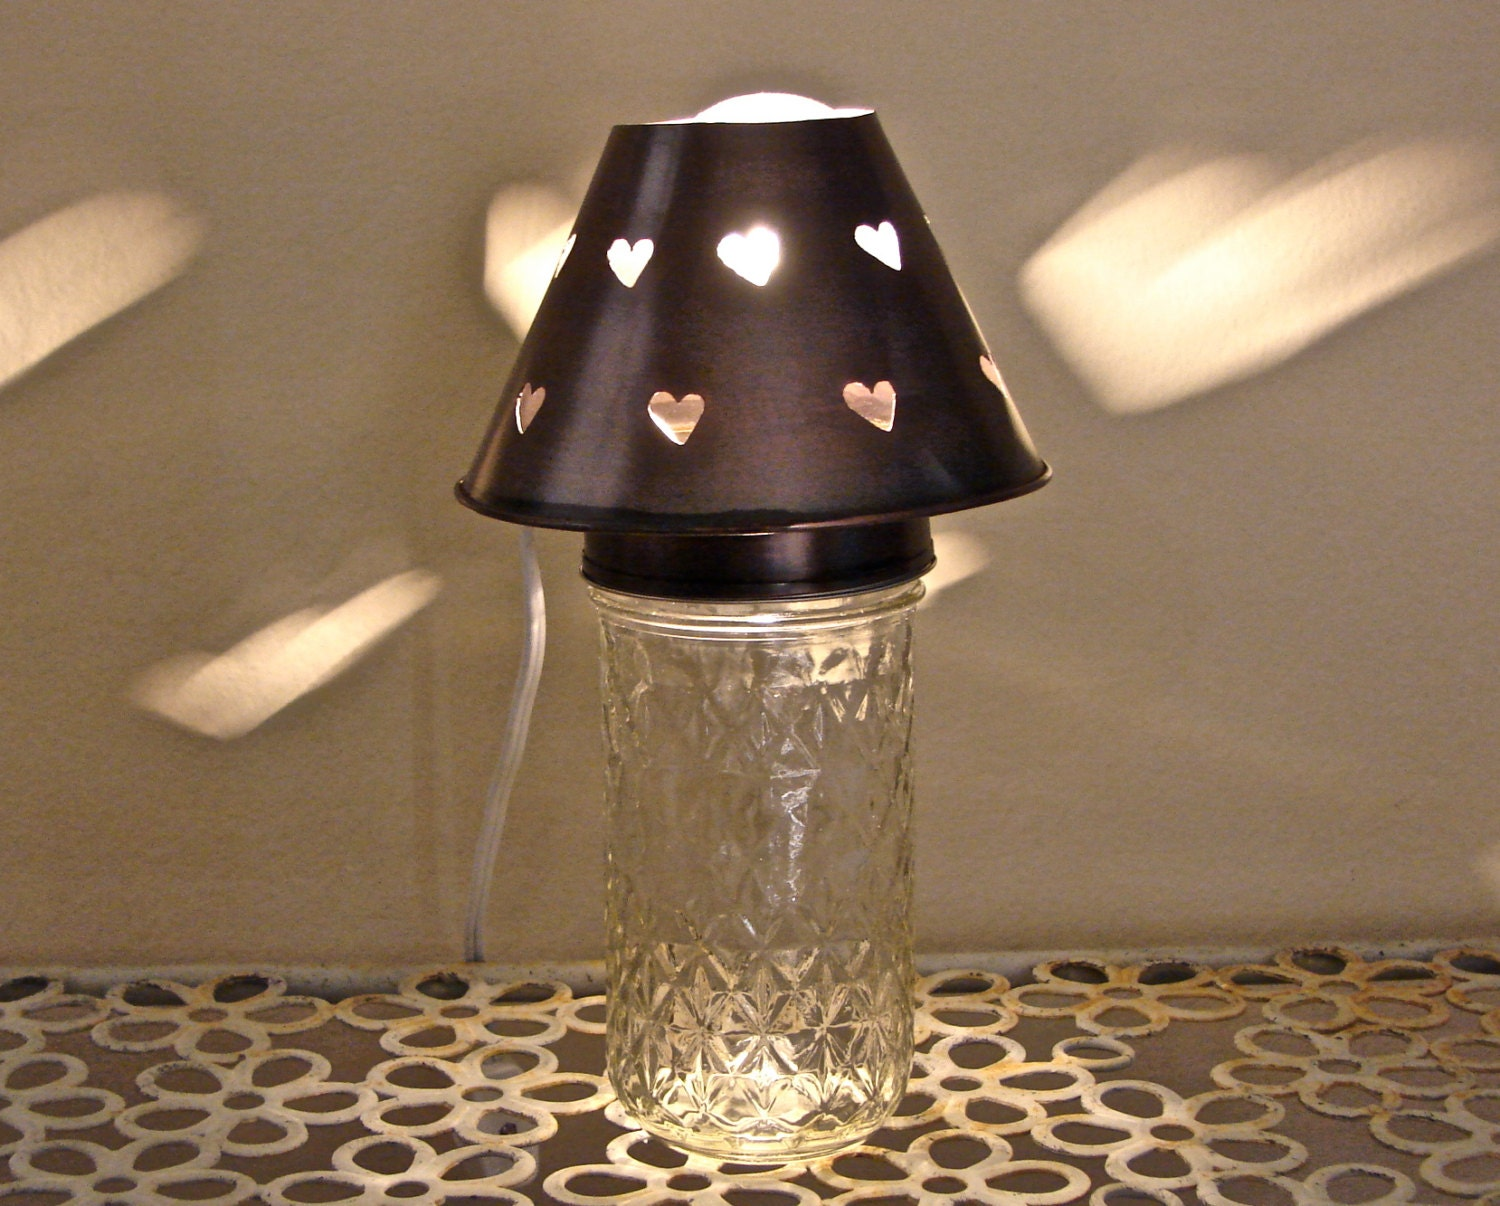 quilted jelly mason jar heart shade night light or accent lamp. Black Bedroom Furniture Sets. Home Design Ideas